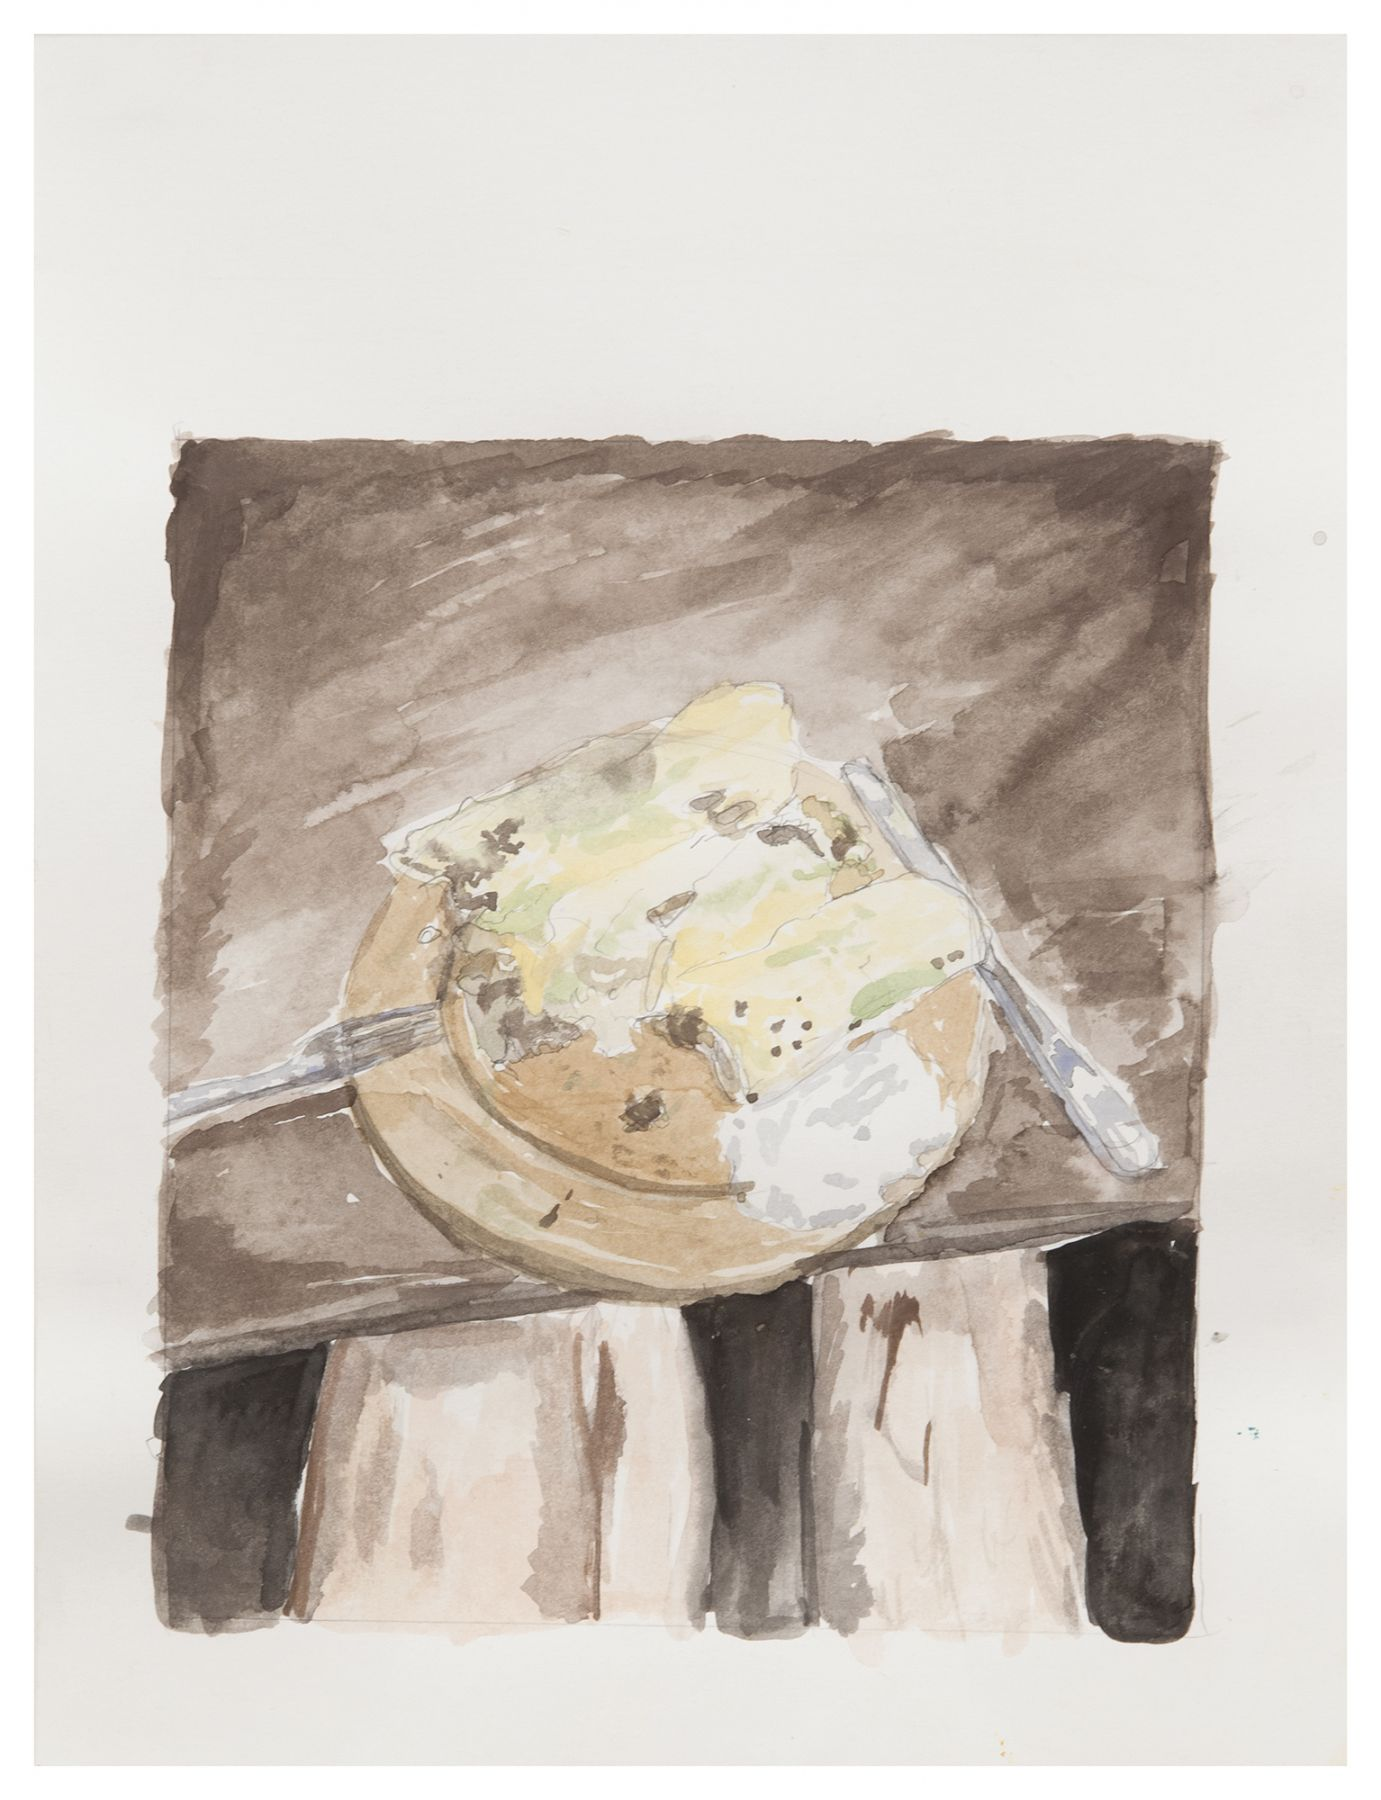 Matthew Langan Peck February Enchiladas, 2015 Watercolor and pencil on paper Paper: 11 7/8 x 9 7/8 inches (30.2 x 25.1 cm) Frame: 13 3/4 x 10 7/8 inches (34.9 x 27.6 cm)